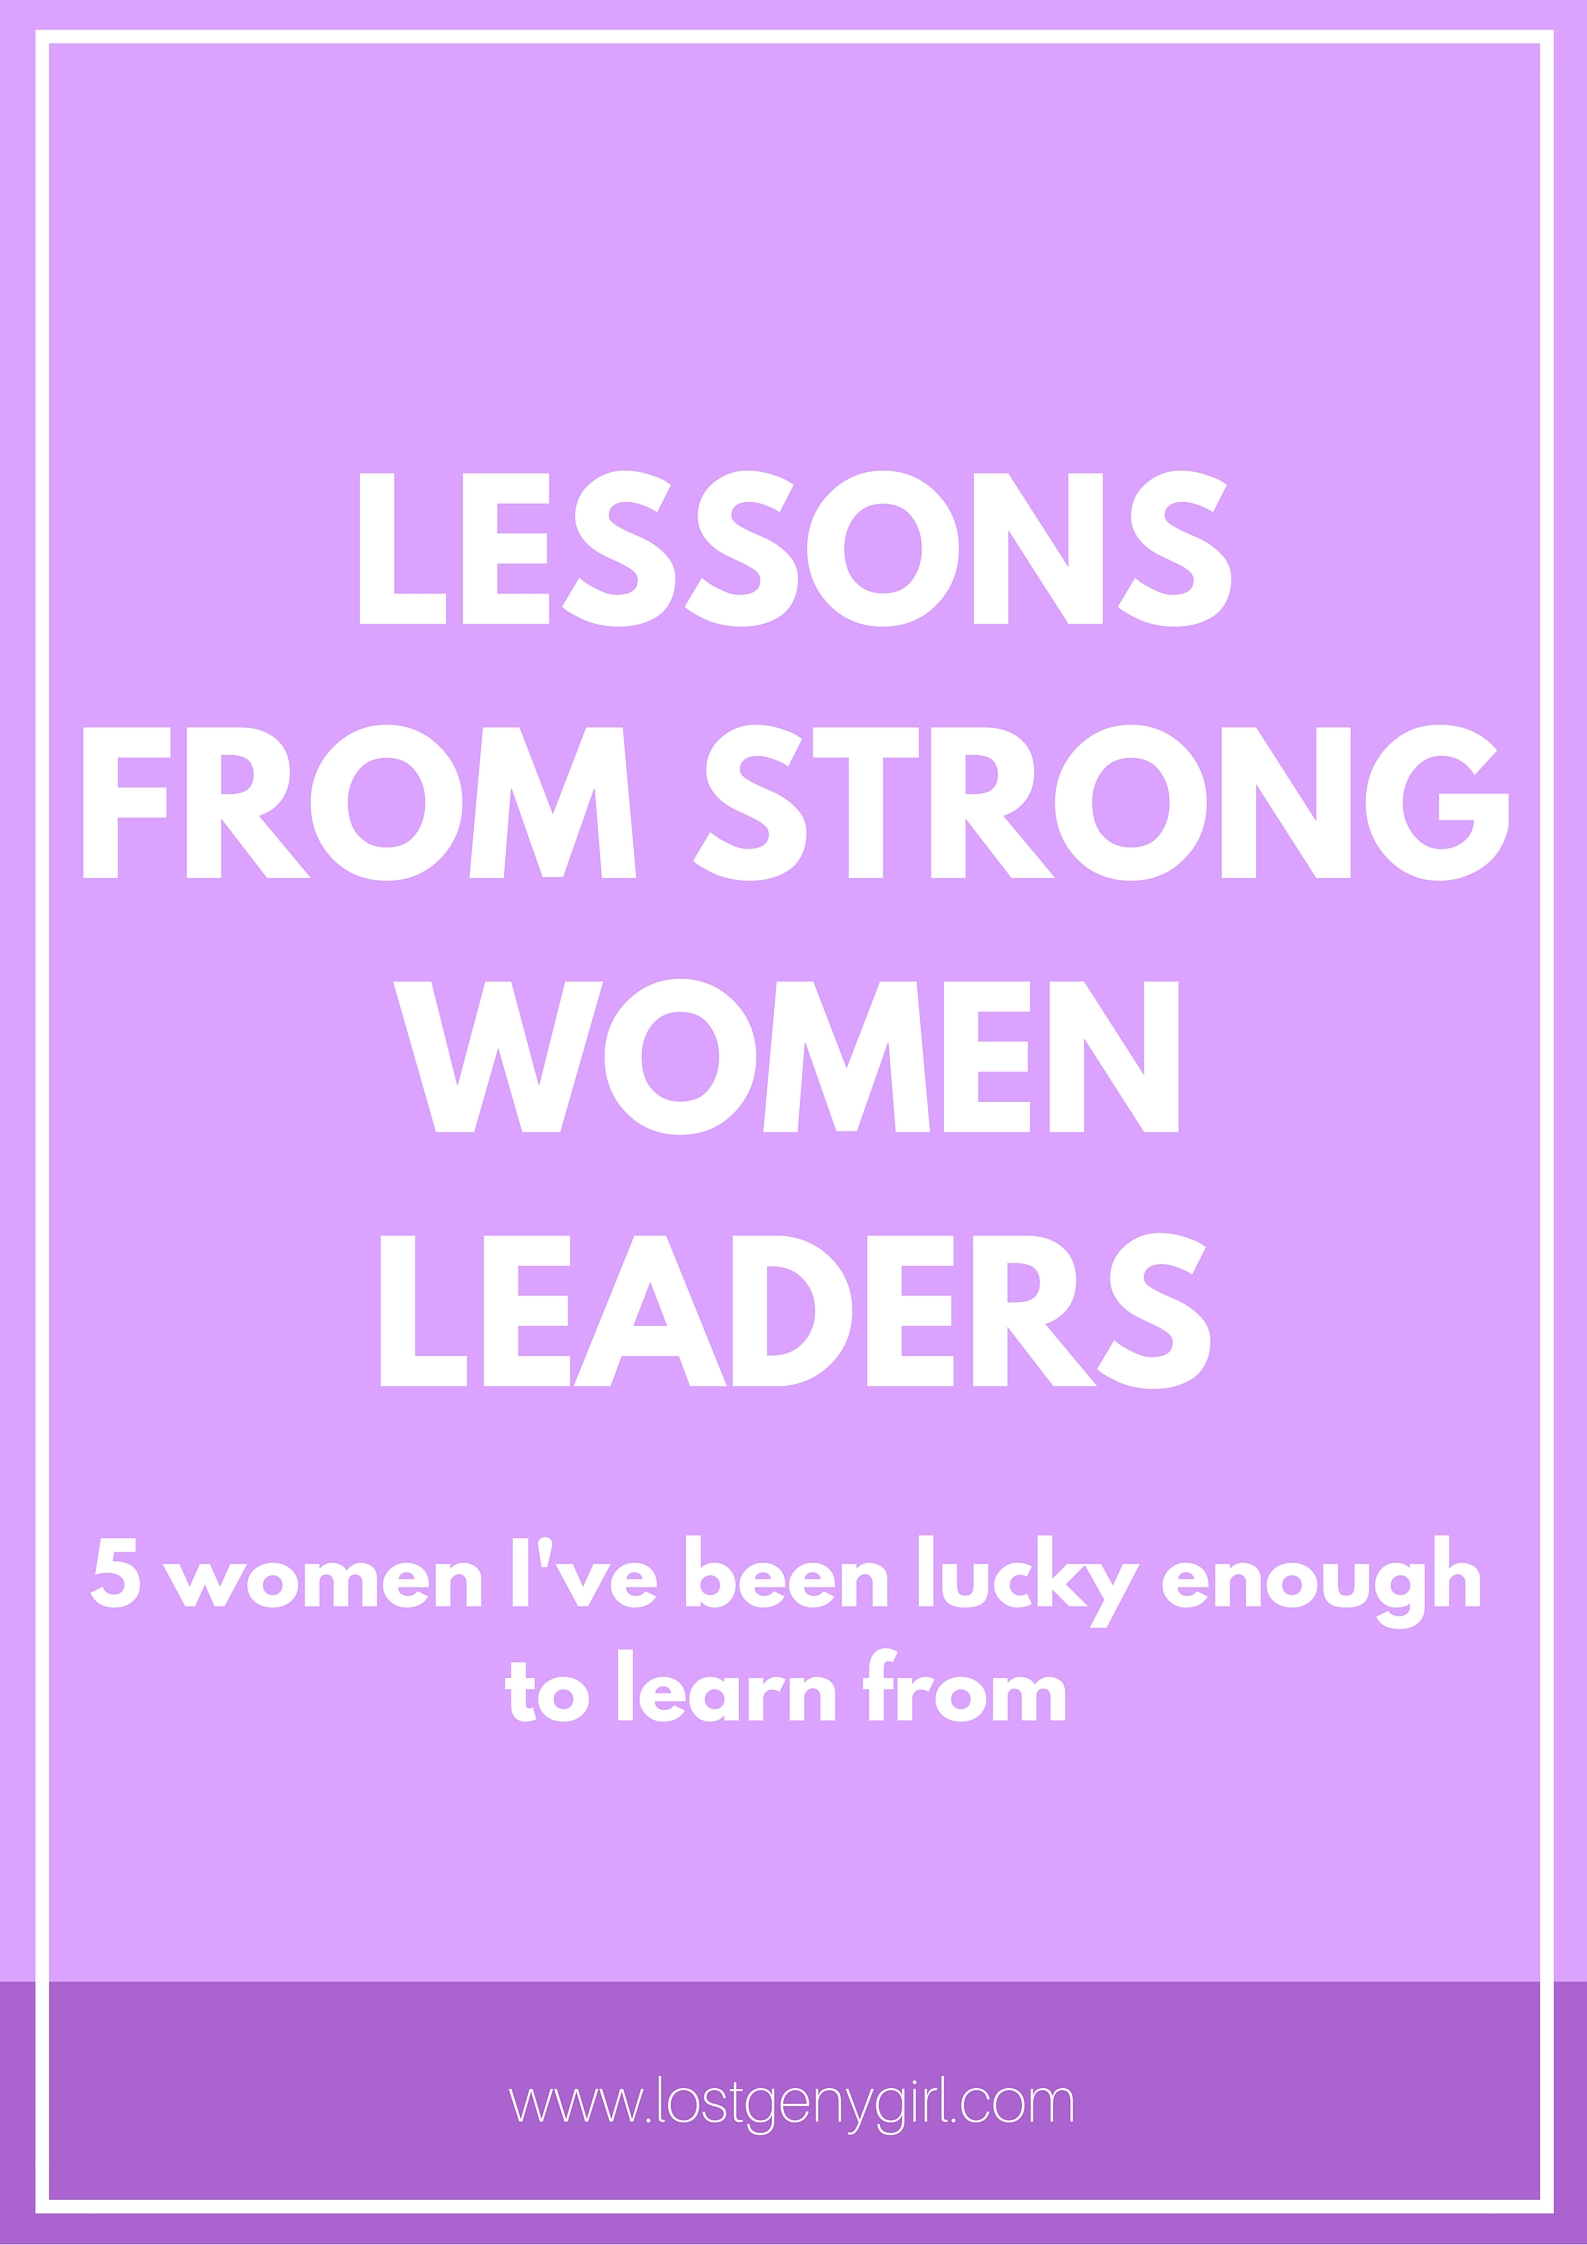 Lessons From Strong Women Leaders + Zenni Optical Giveaway